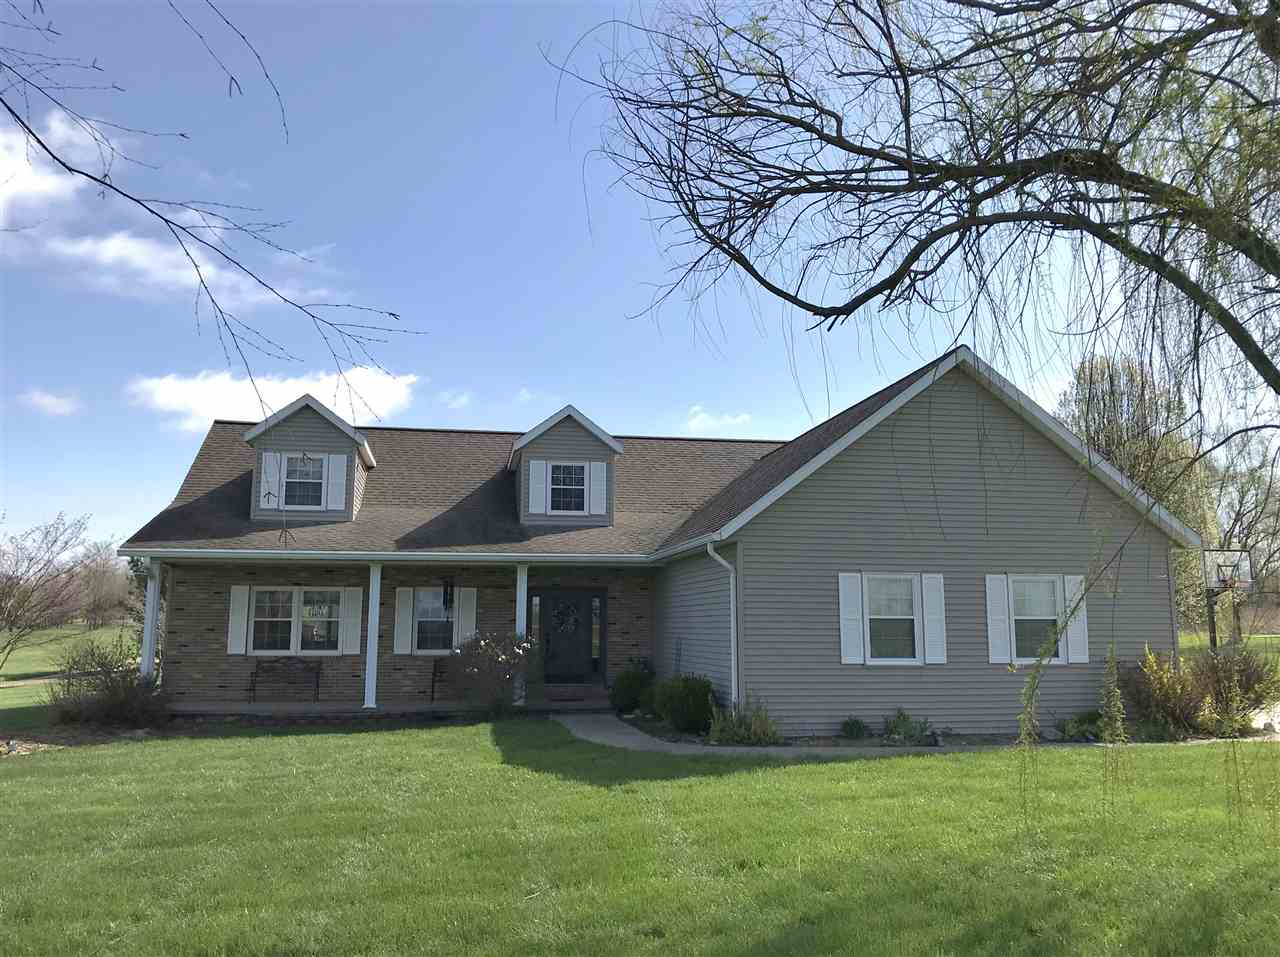 170 N Hebert Road, Vincennes, IN 47591